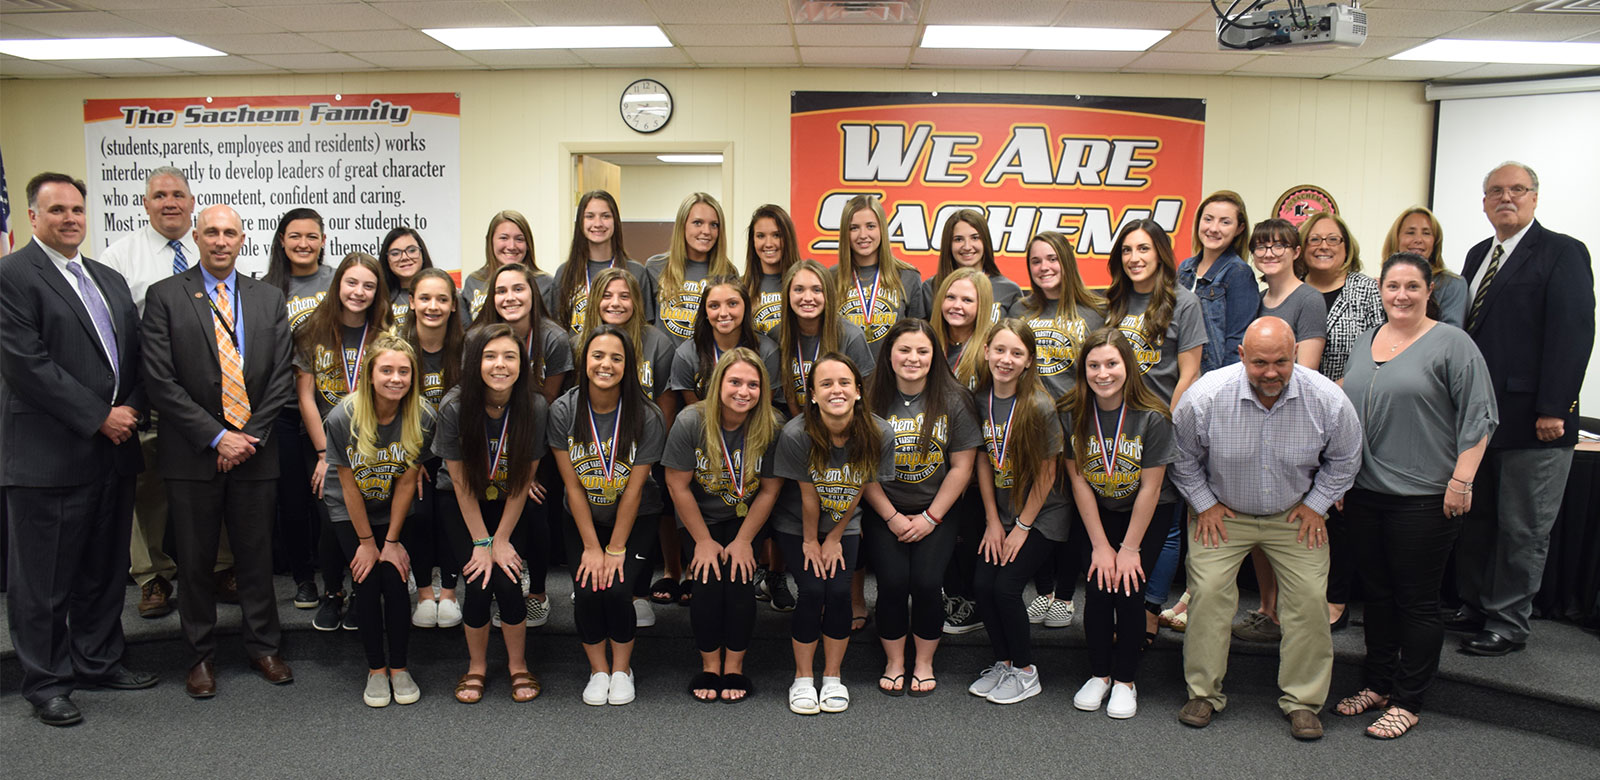 Athletics and Community Service Honored at May Board Meeting